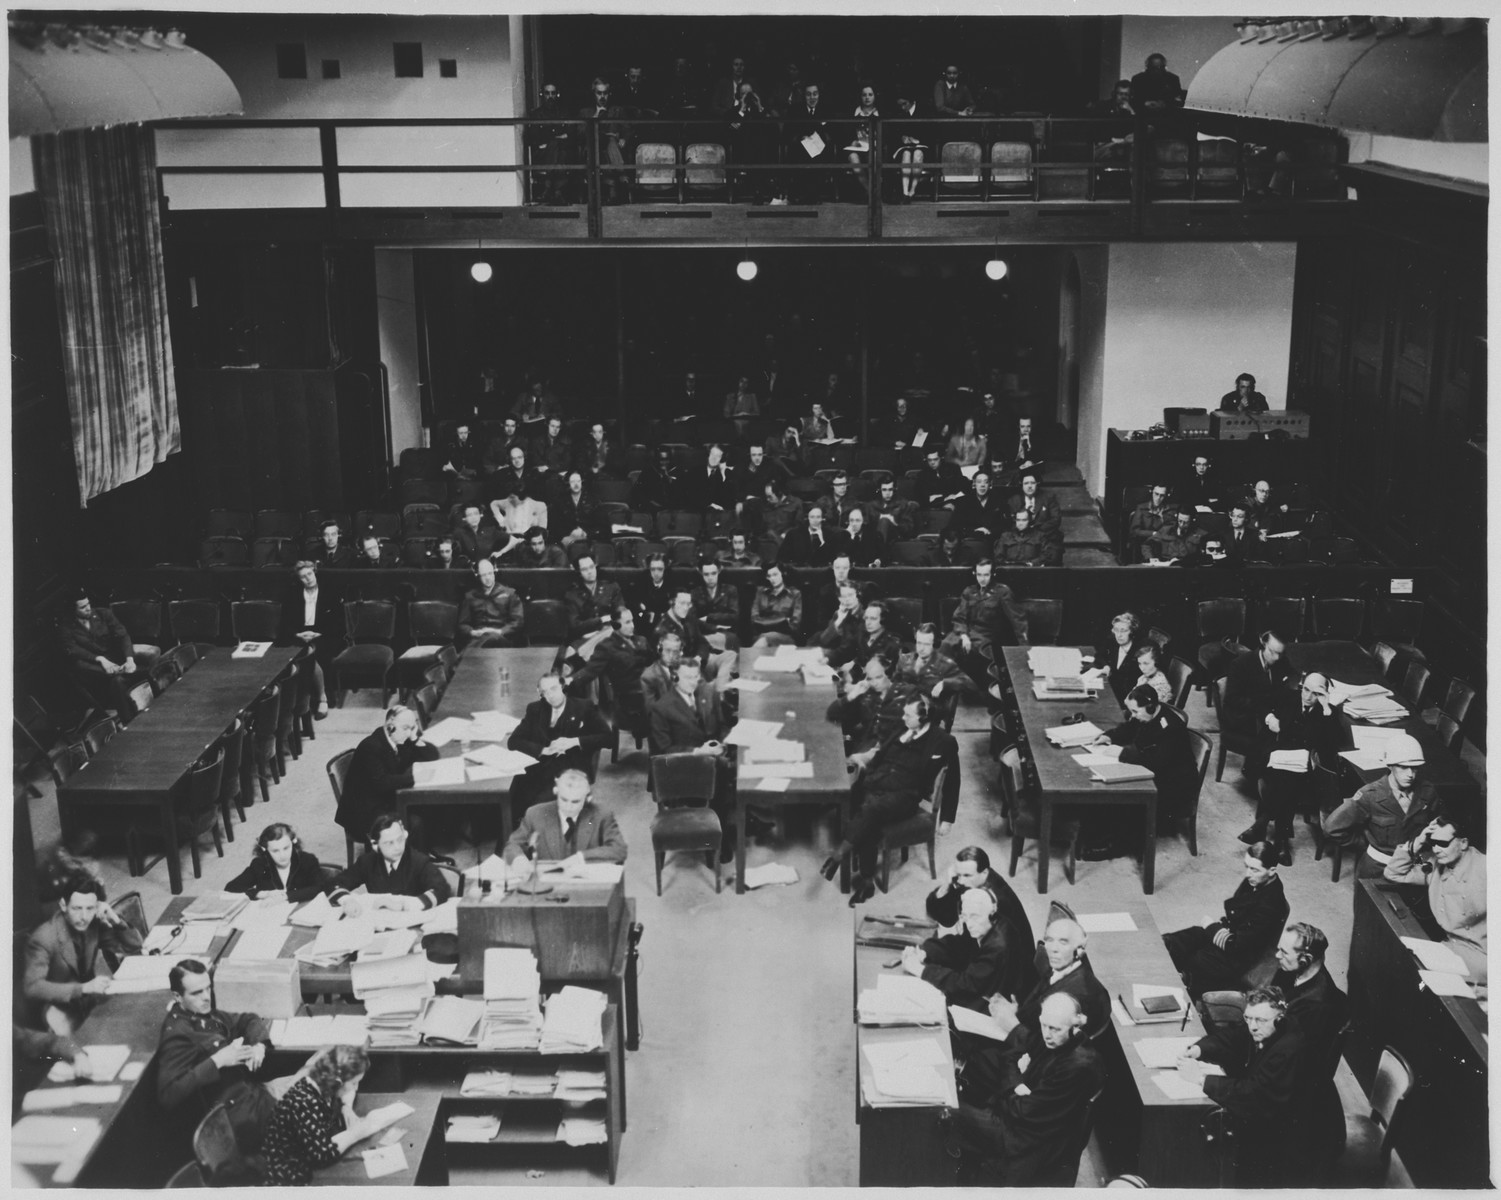 View of the courtroom during a session of the International Military Tribunal trial of war criminals at Nuremberg.